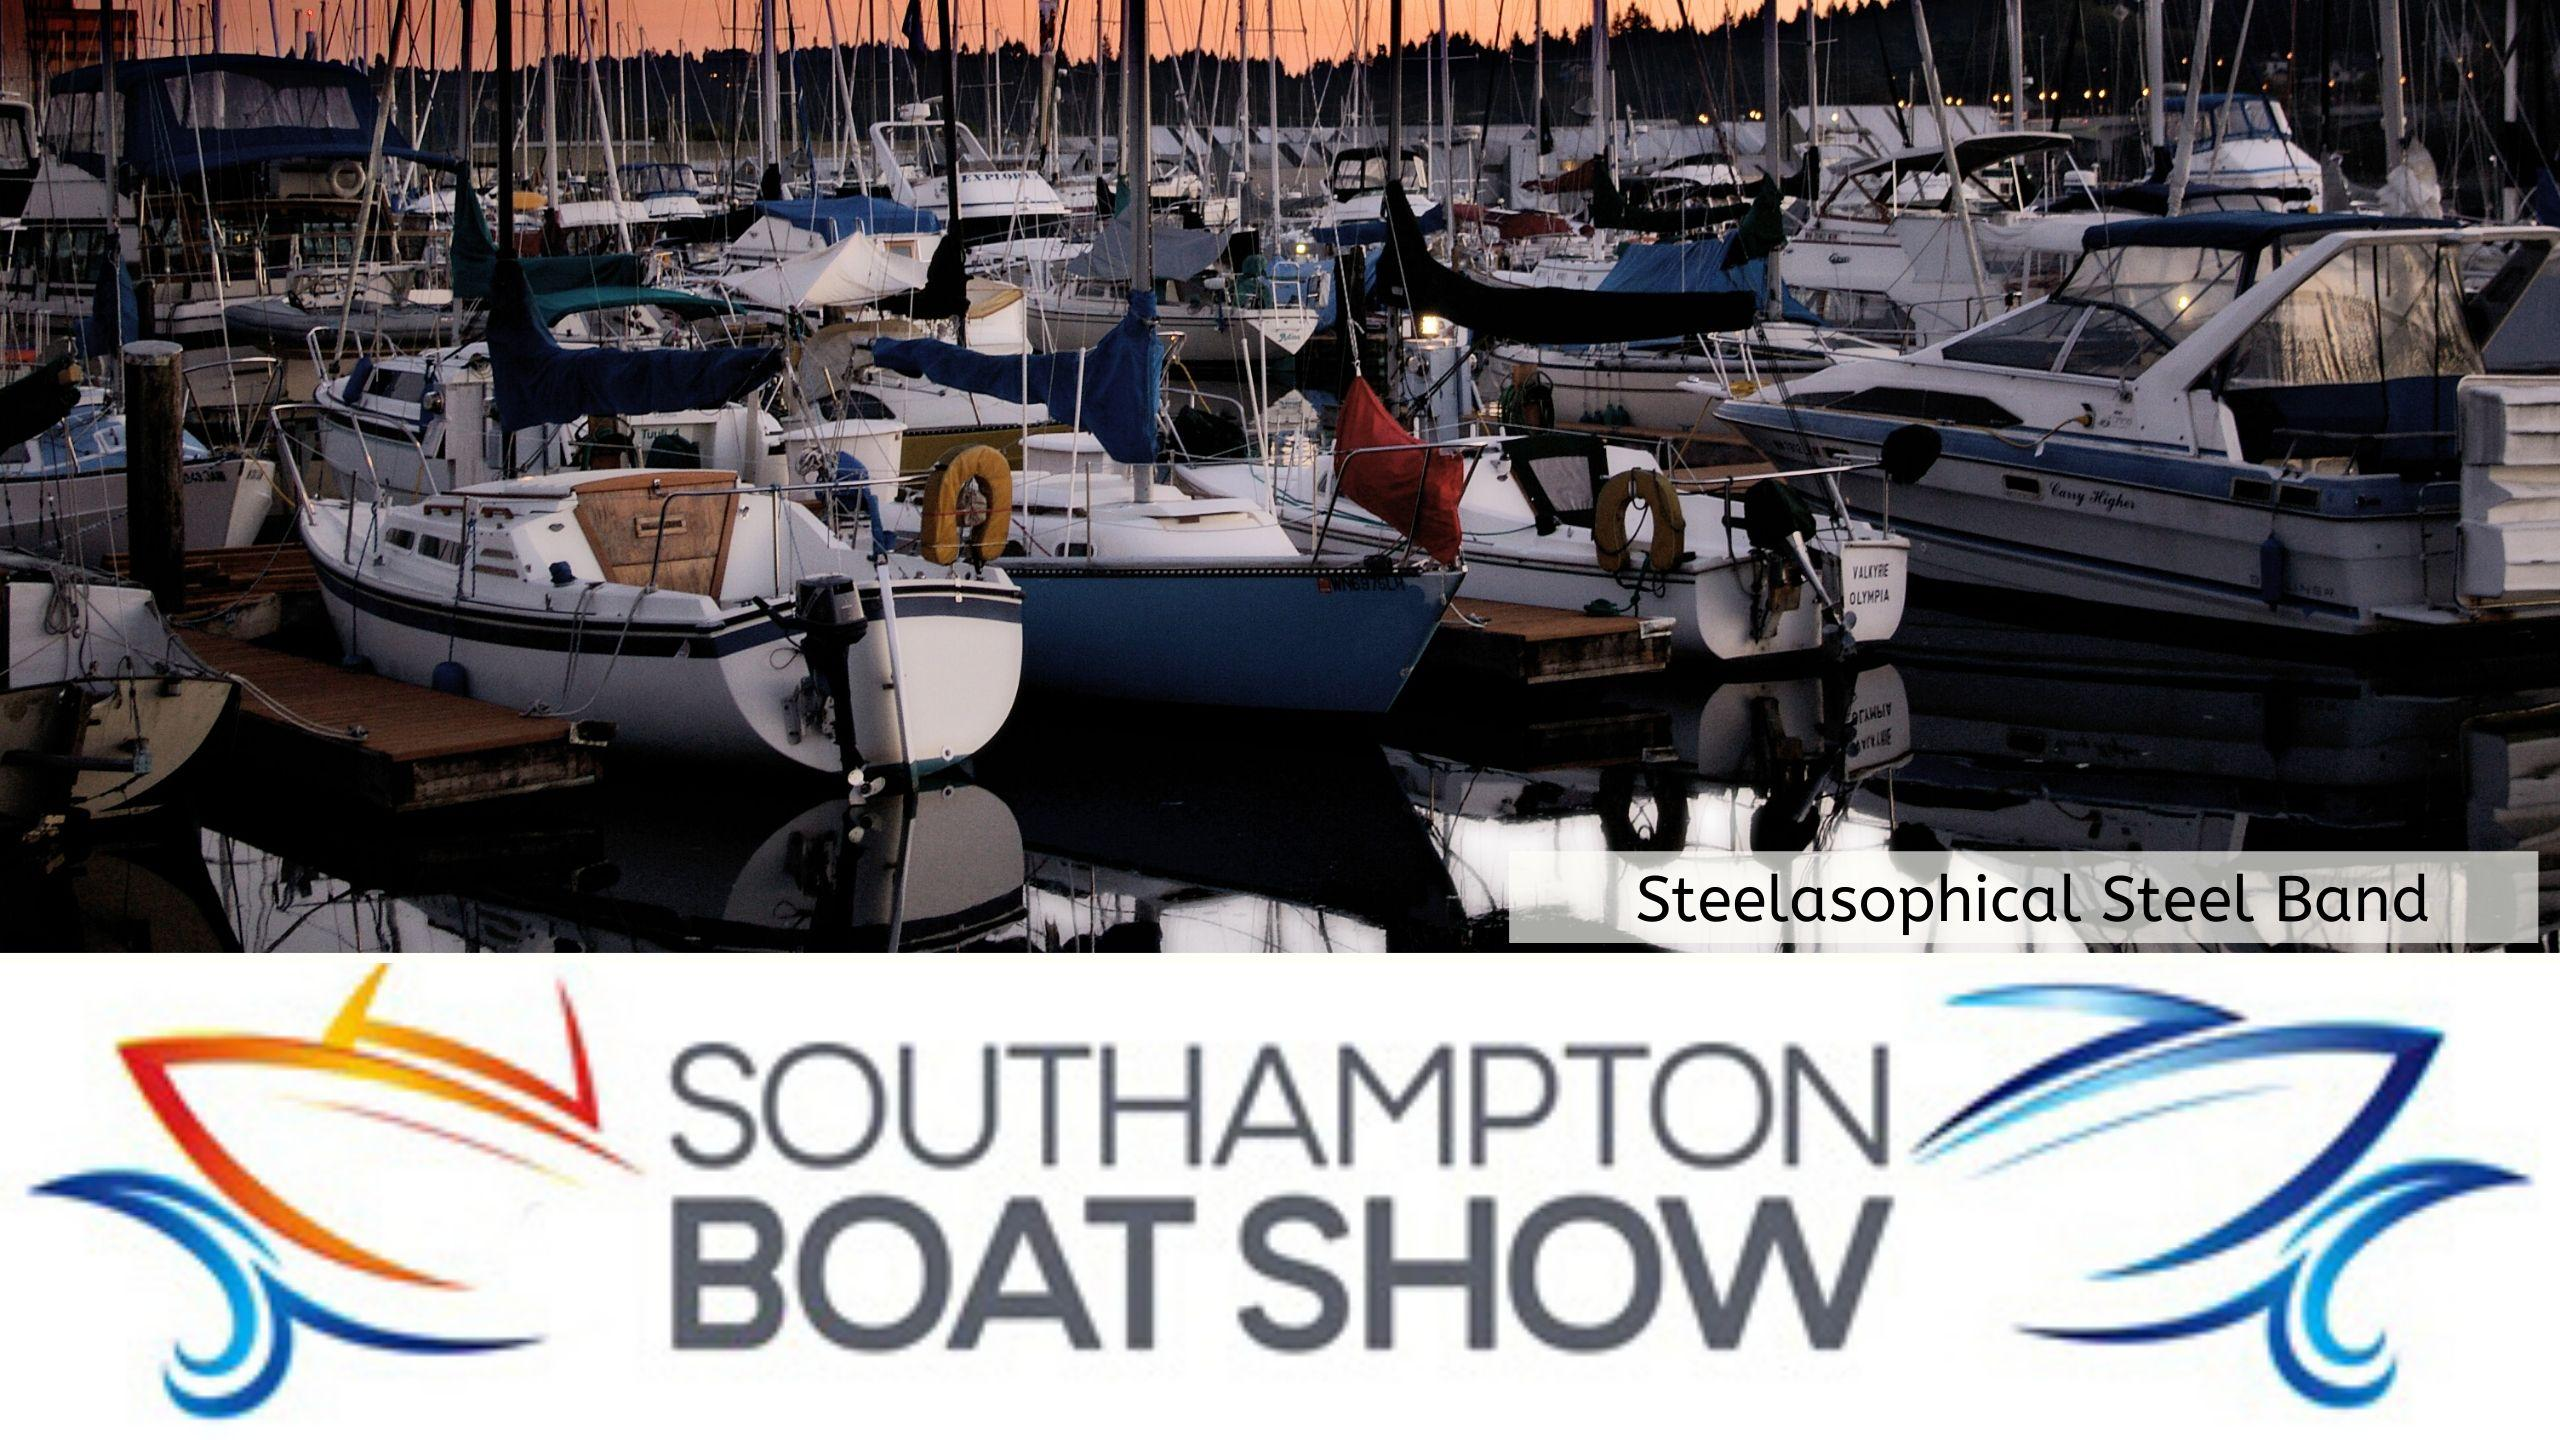 Steelasophical Steel Band Southampton Boat Show Yacht Market d34534534534534